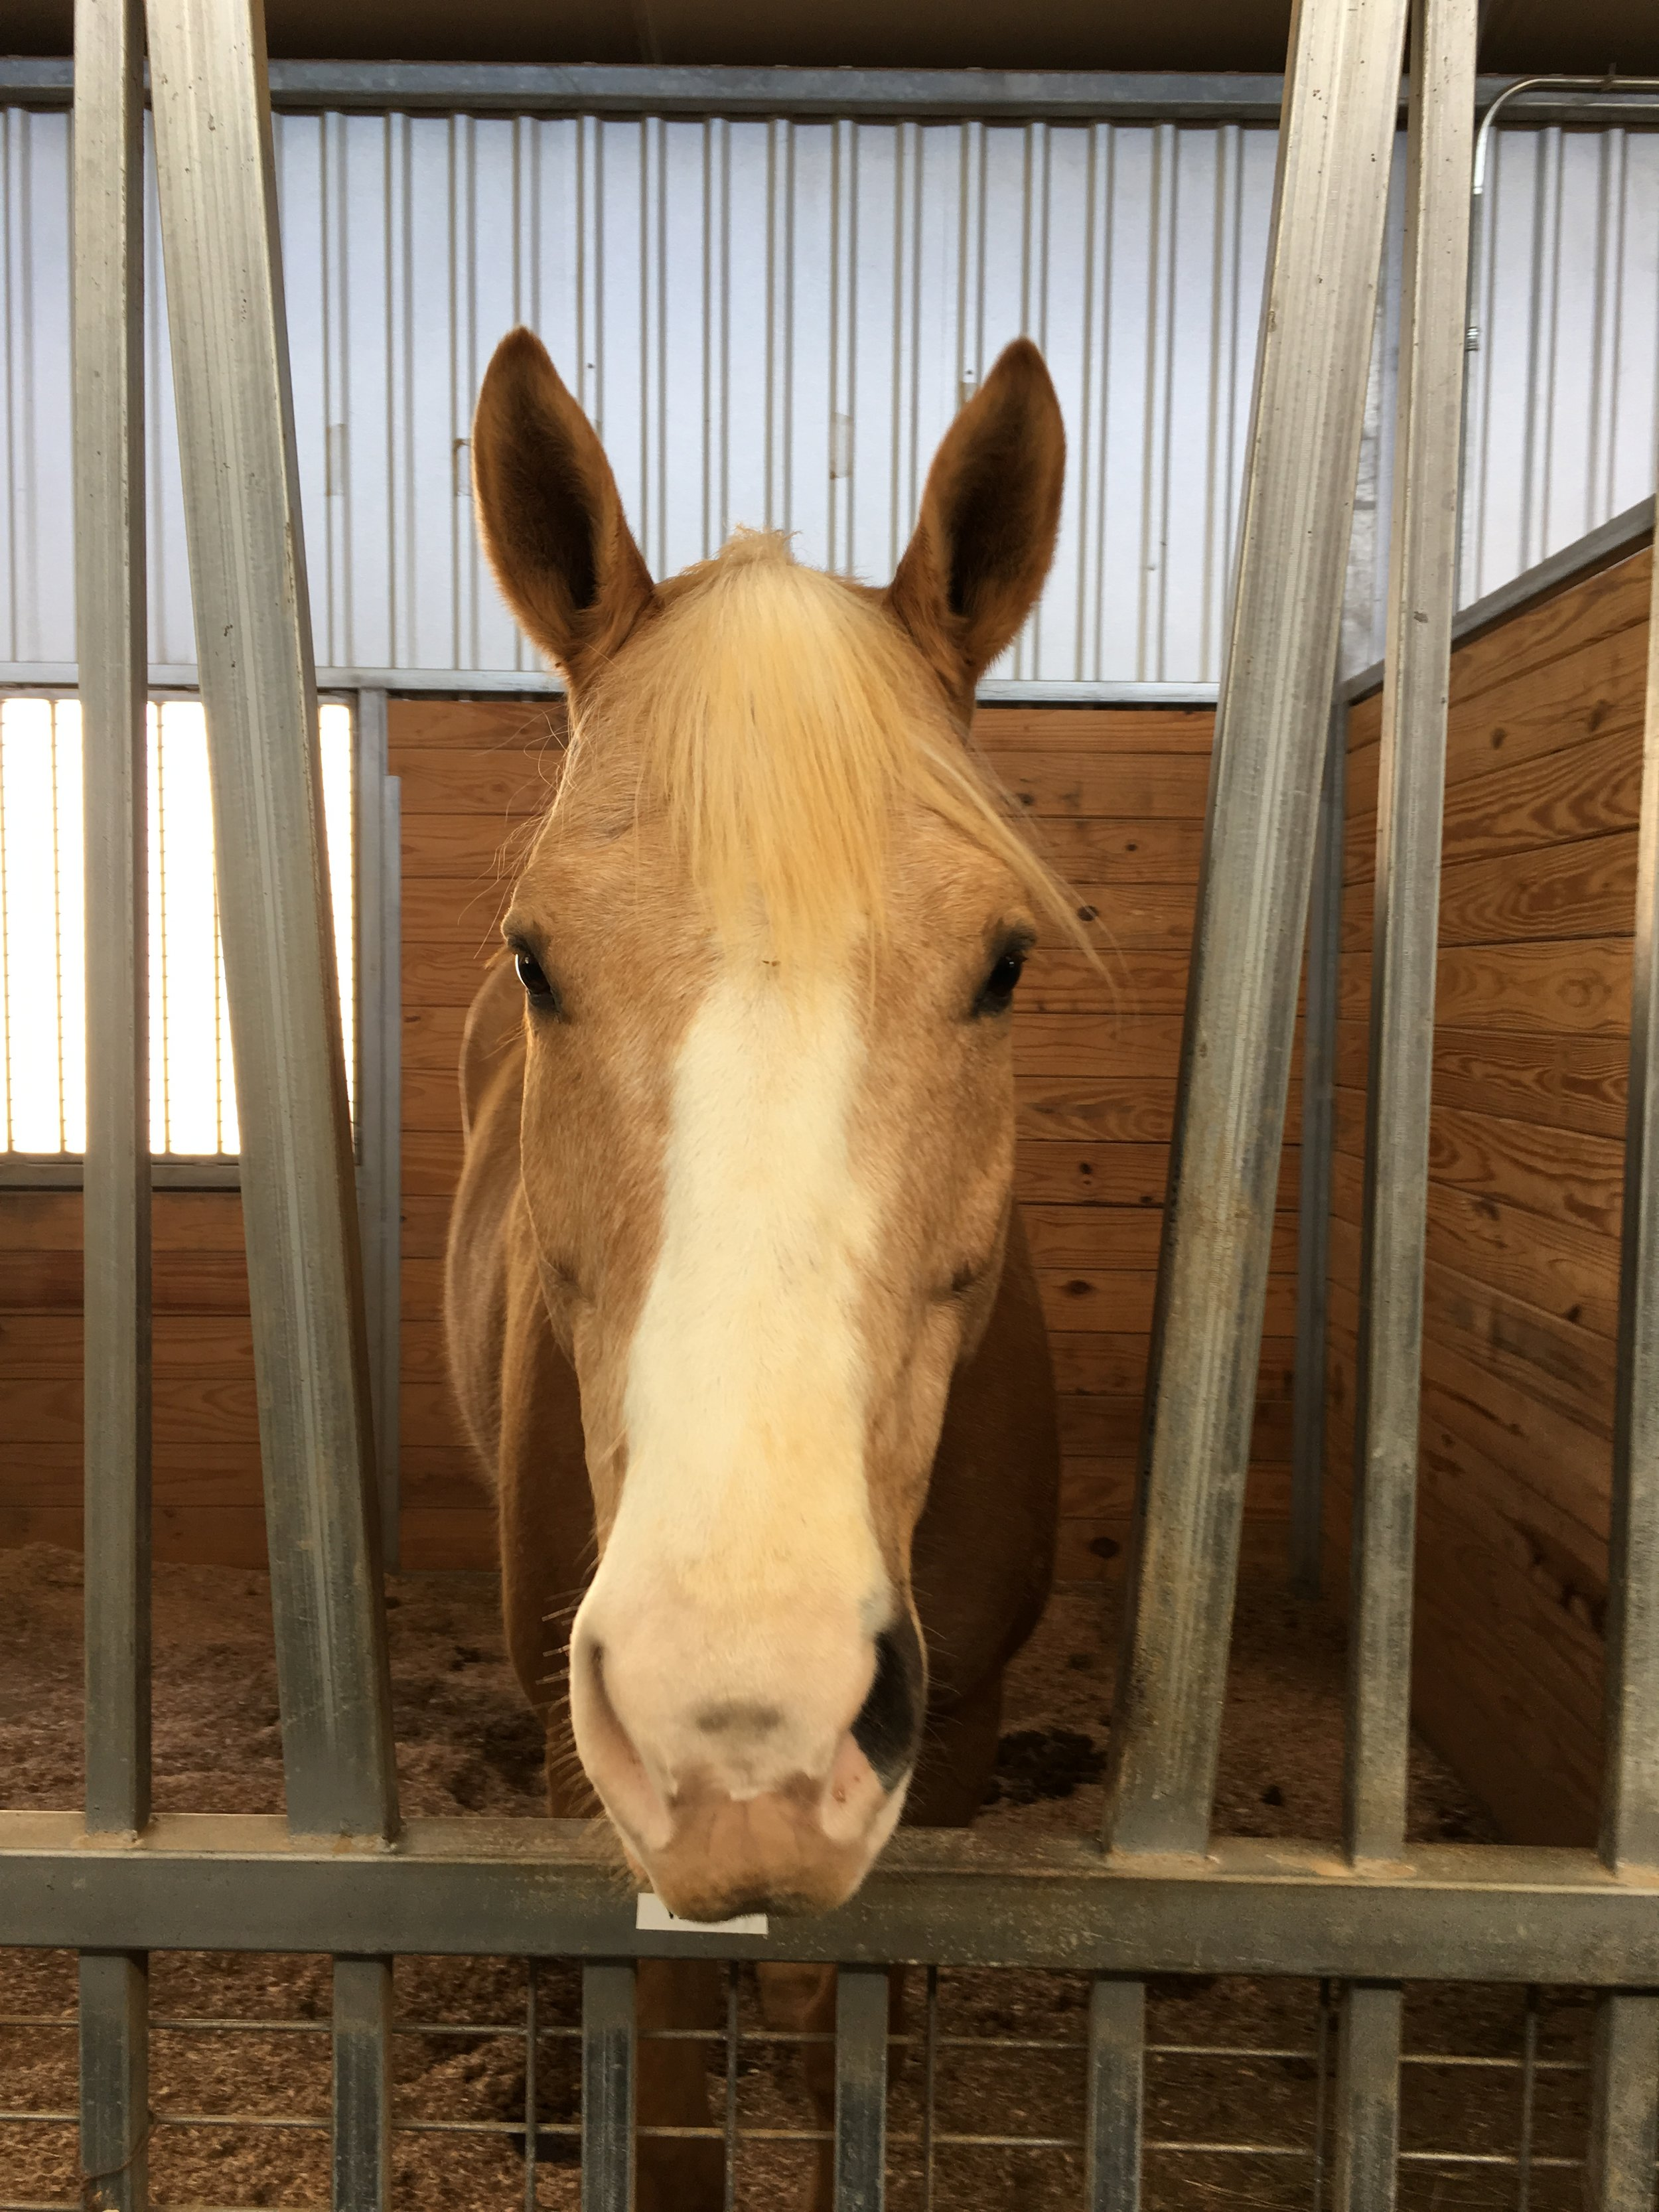 Equest Therapy Horse Jonah is also a Palomino